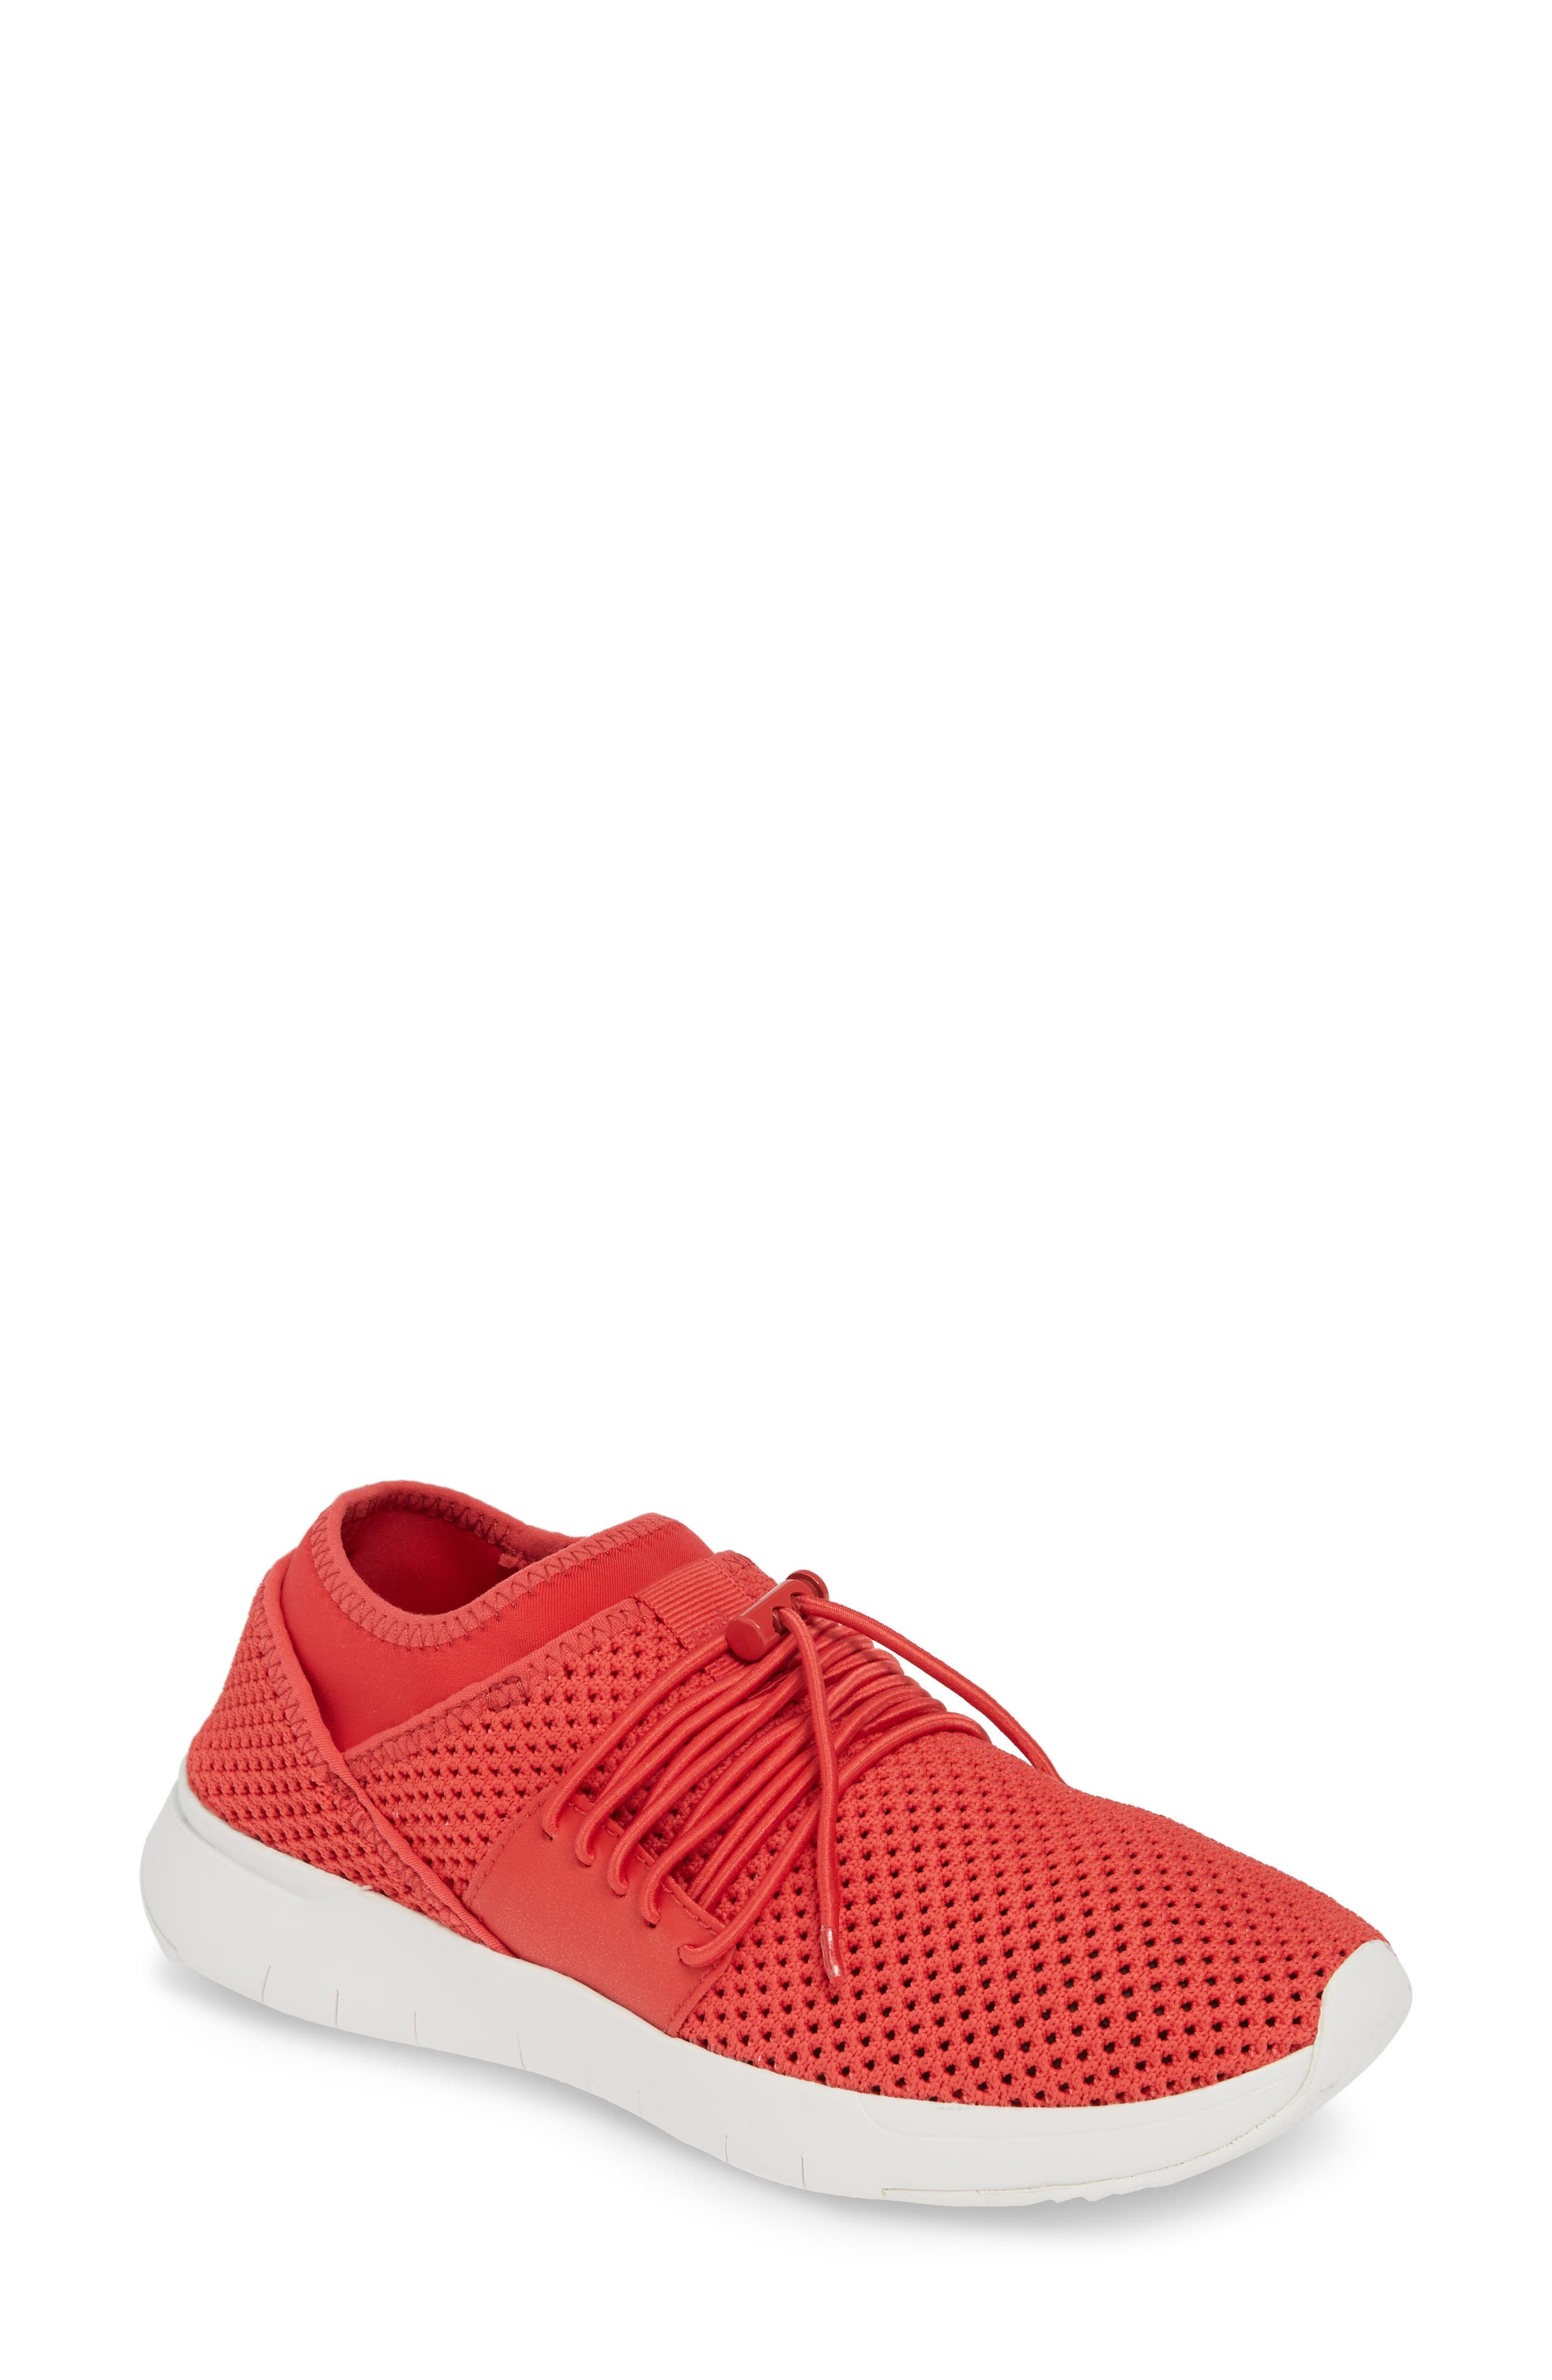 FITFLOP Airmesh Sneaker, Main, color, PASSION RED